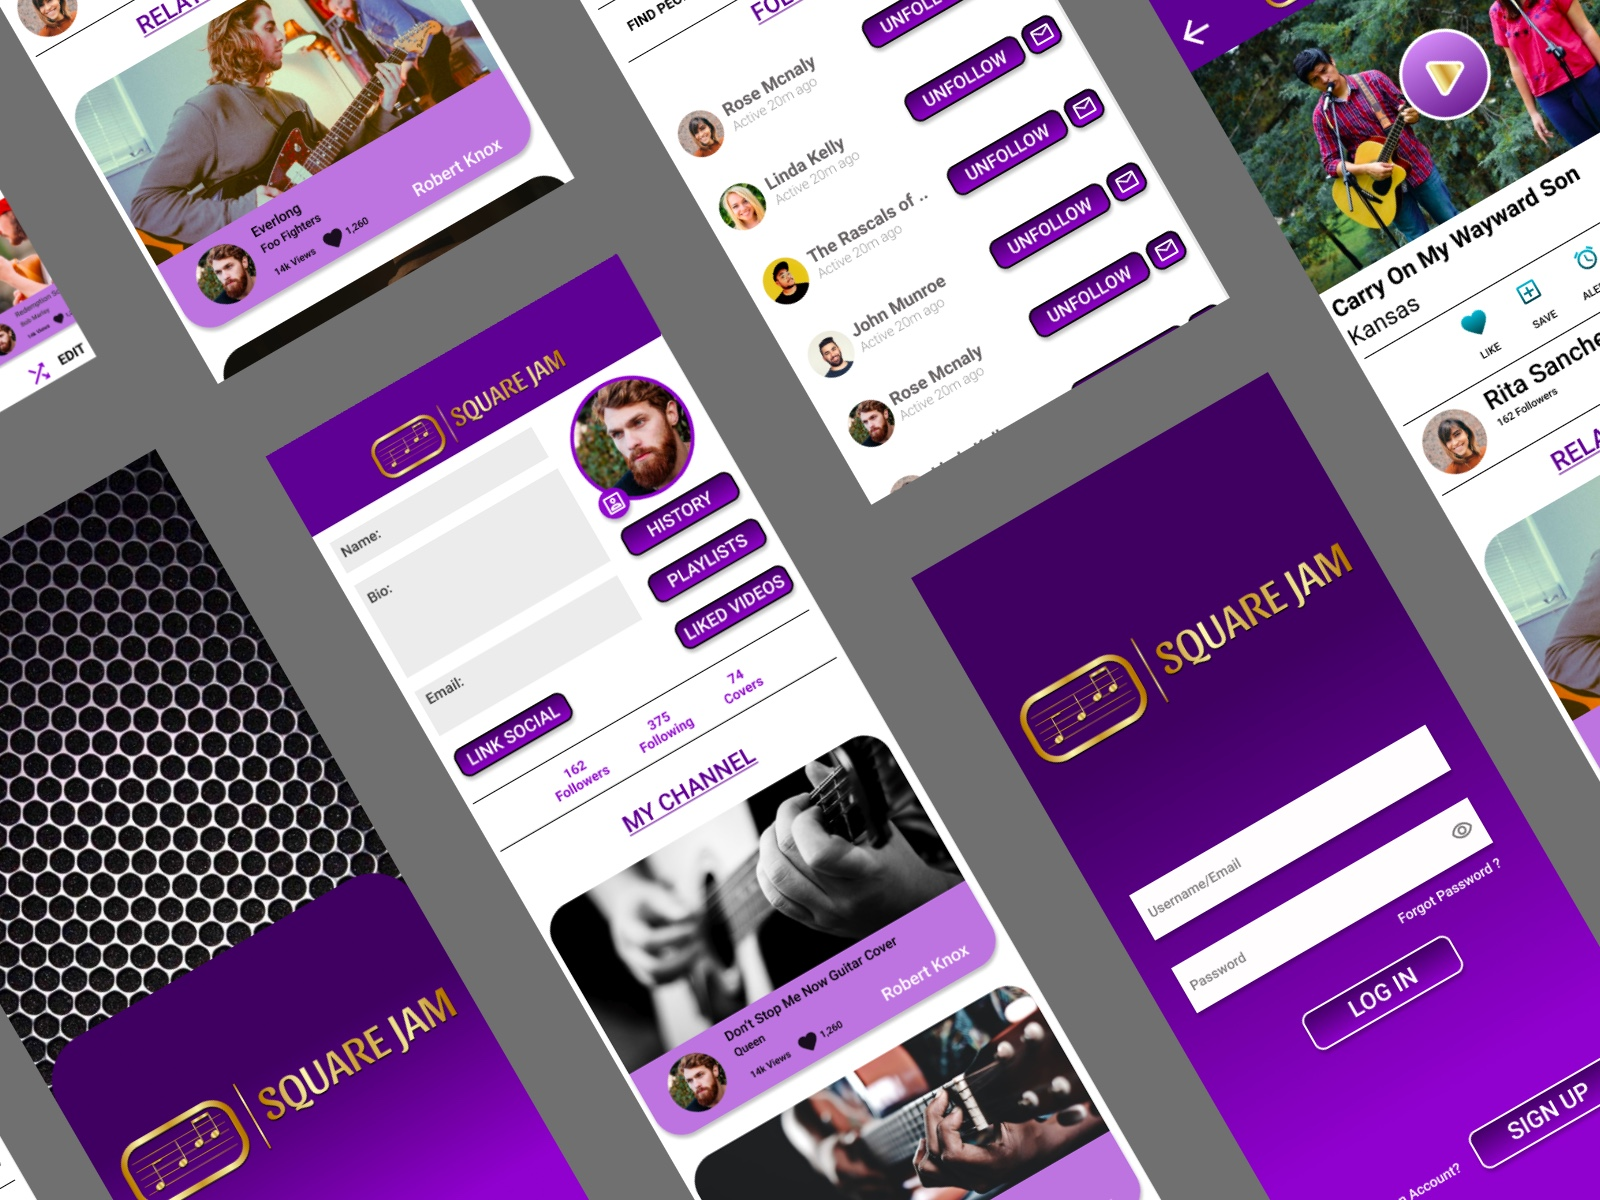 UI/UX design by kingdom app development social media app